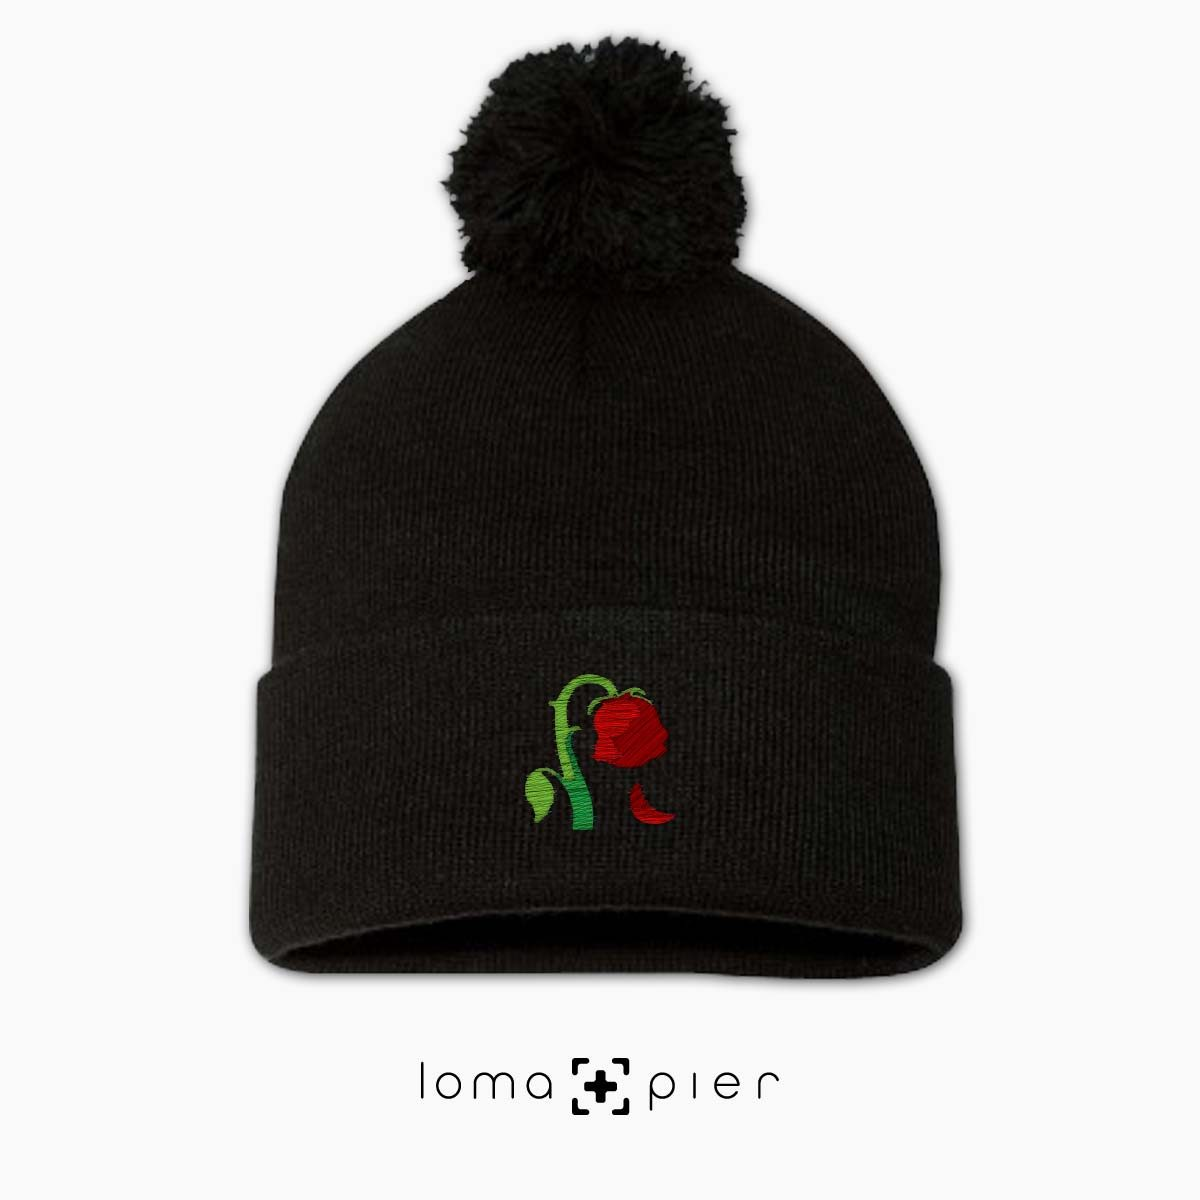 DYING ROSE EMOJI icon embroidered on a black pom pom beanie by loma+pier hat store